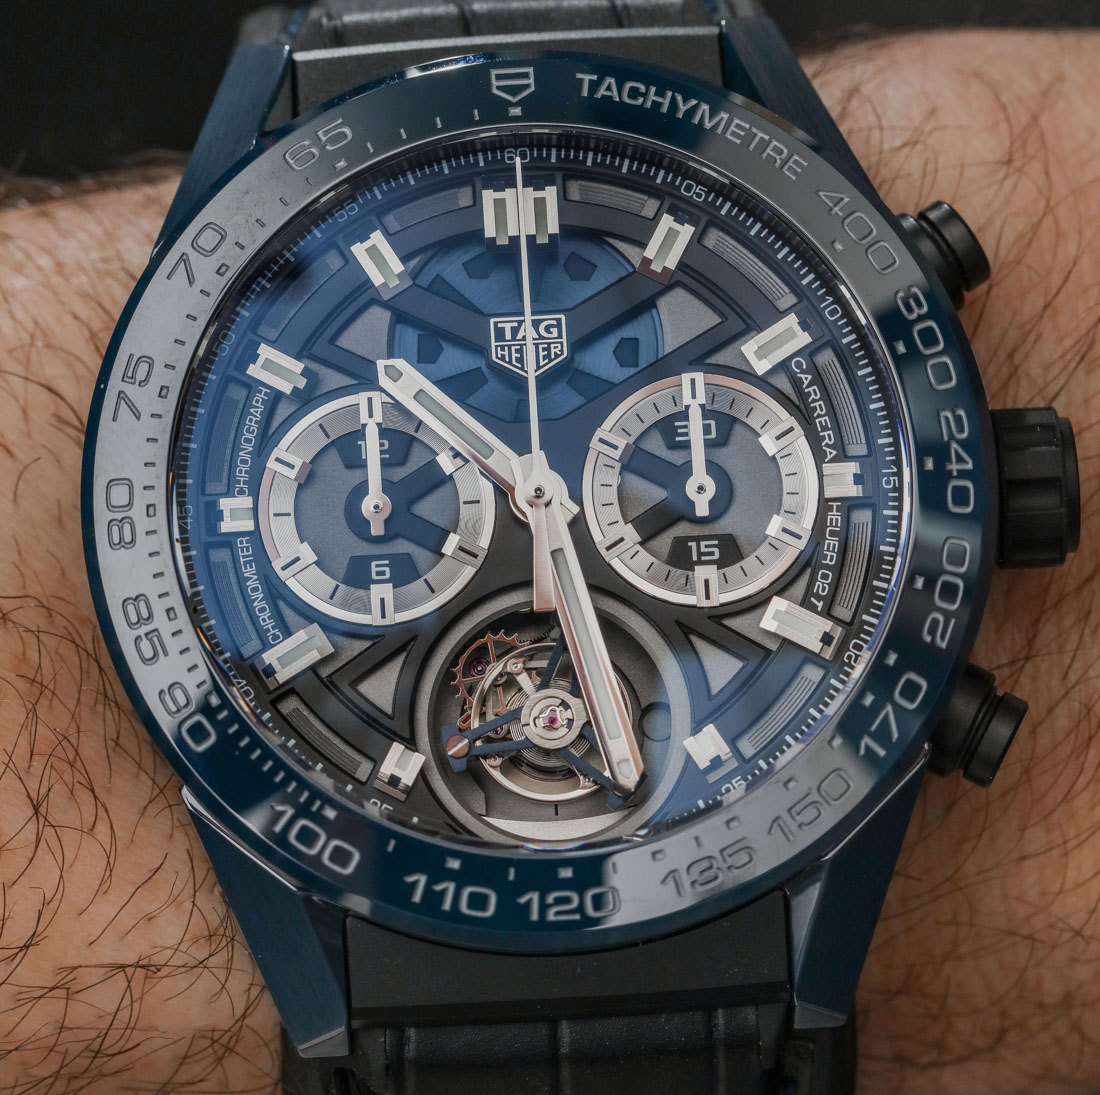 TAG Heuer Carrera 'Tête de Vipère' Chronograph Tourbillon Chronometer Hands-On Hands-On